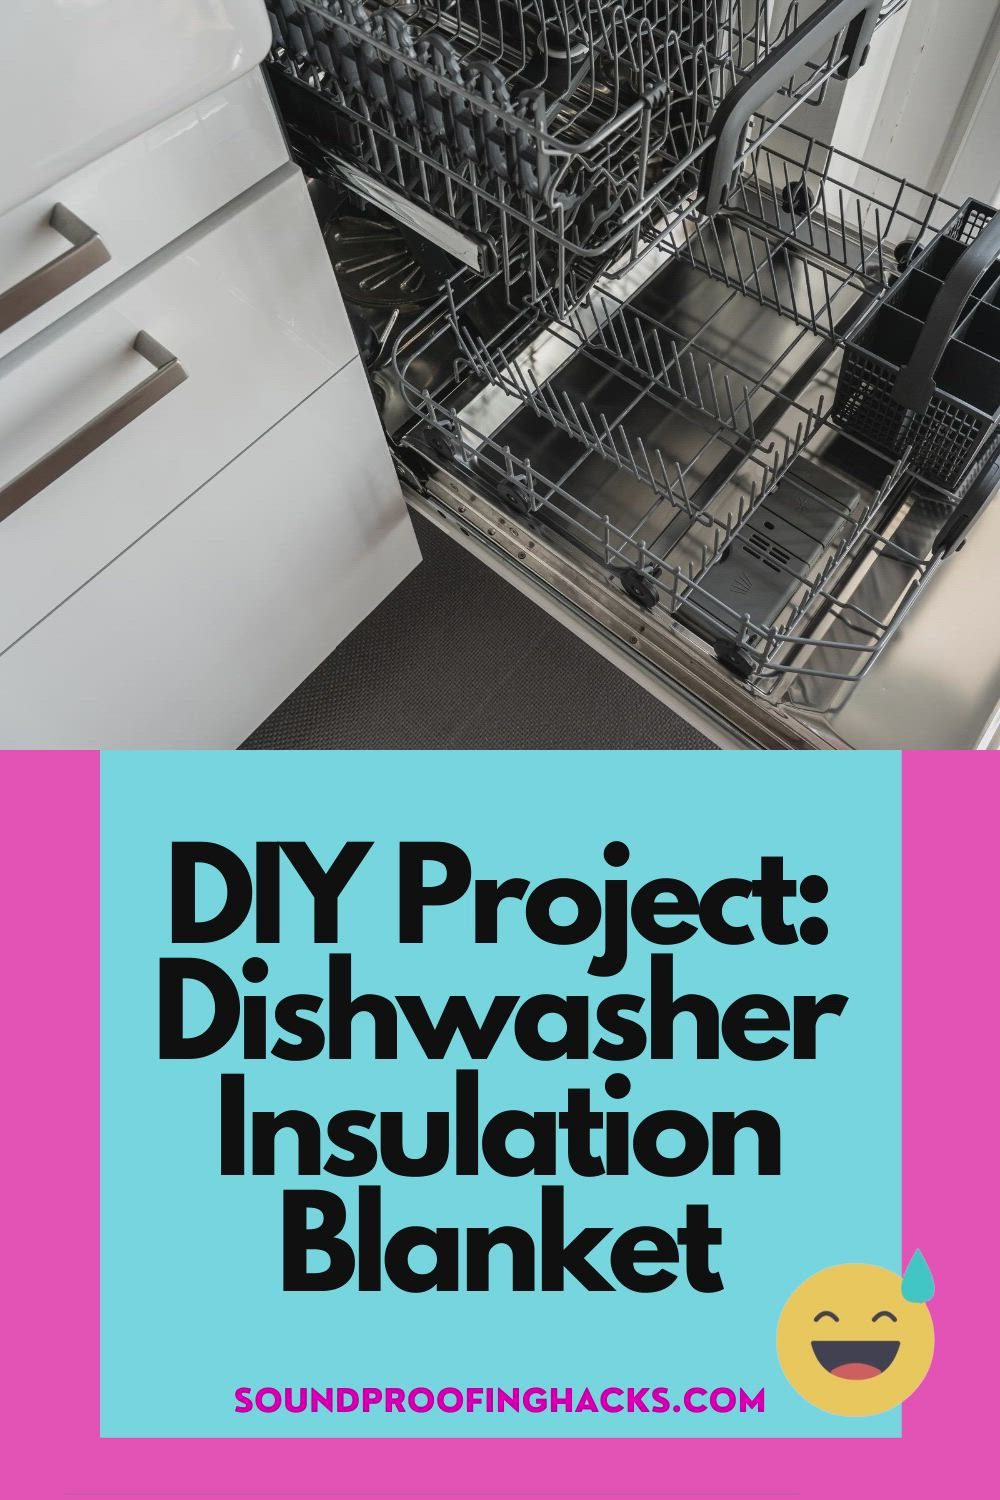 Reduce Dishwasher Noise With An Insulation Blanket Video Blanket Insulation Sound Proofing Insulation